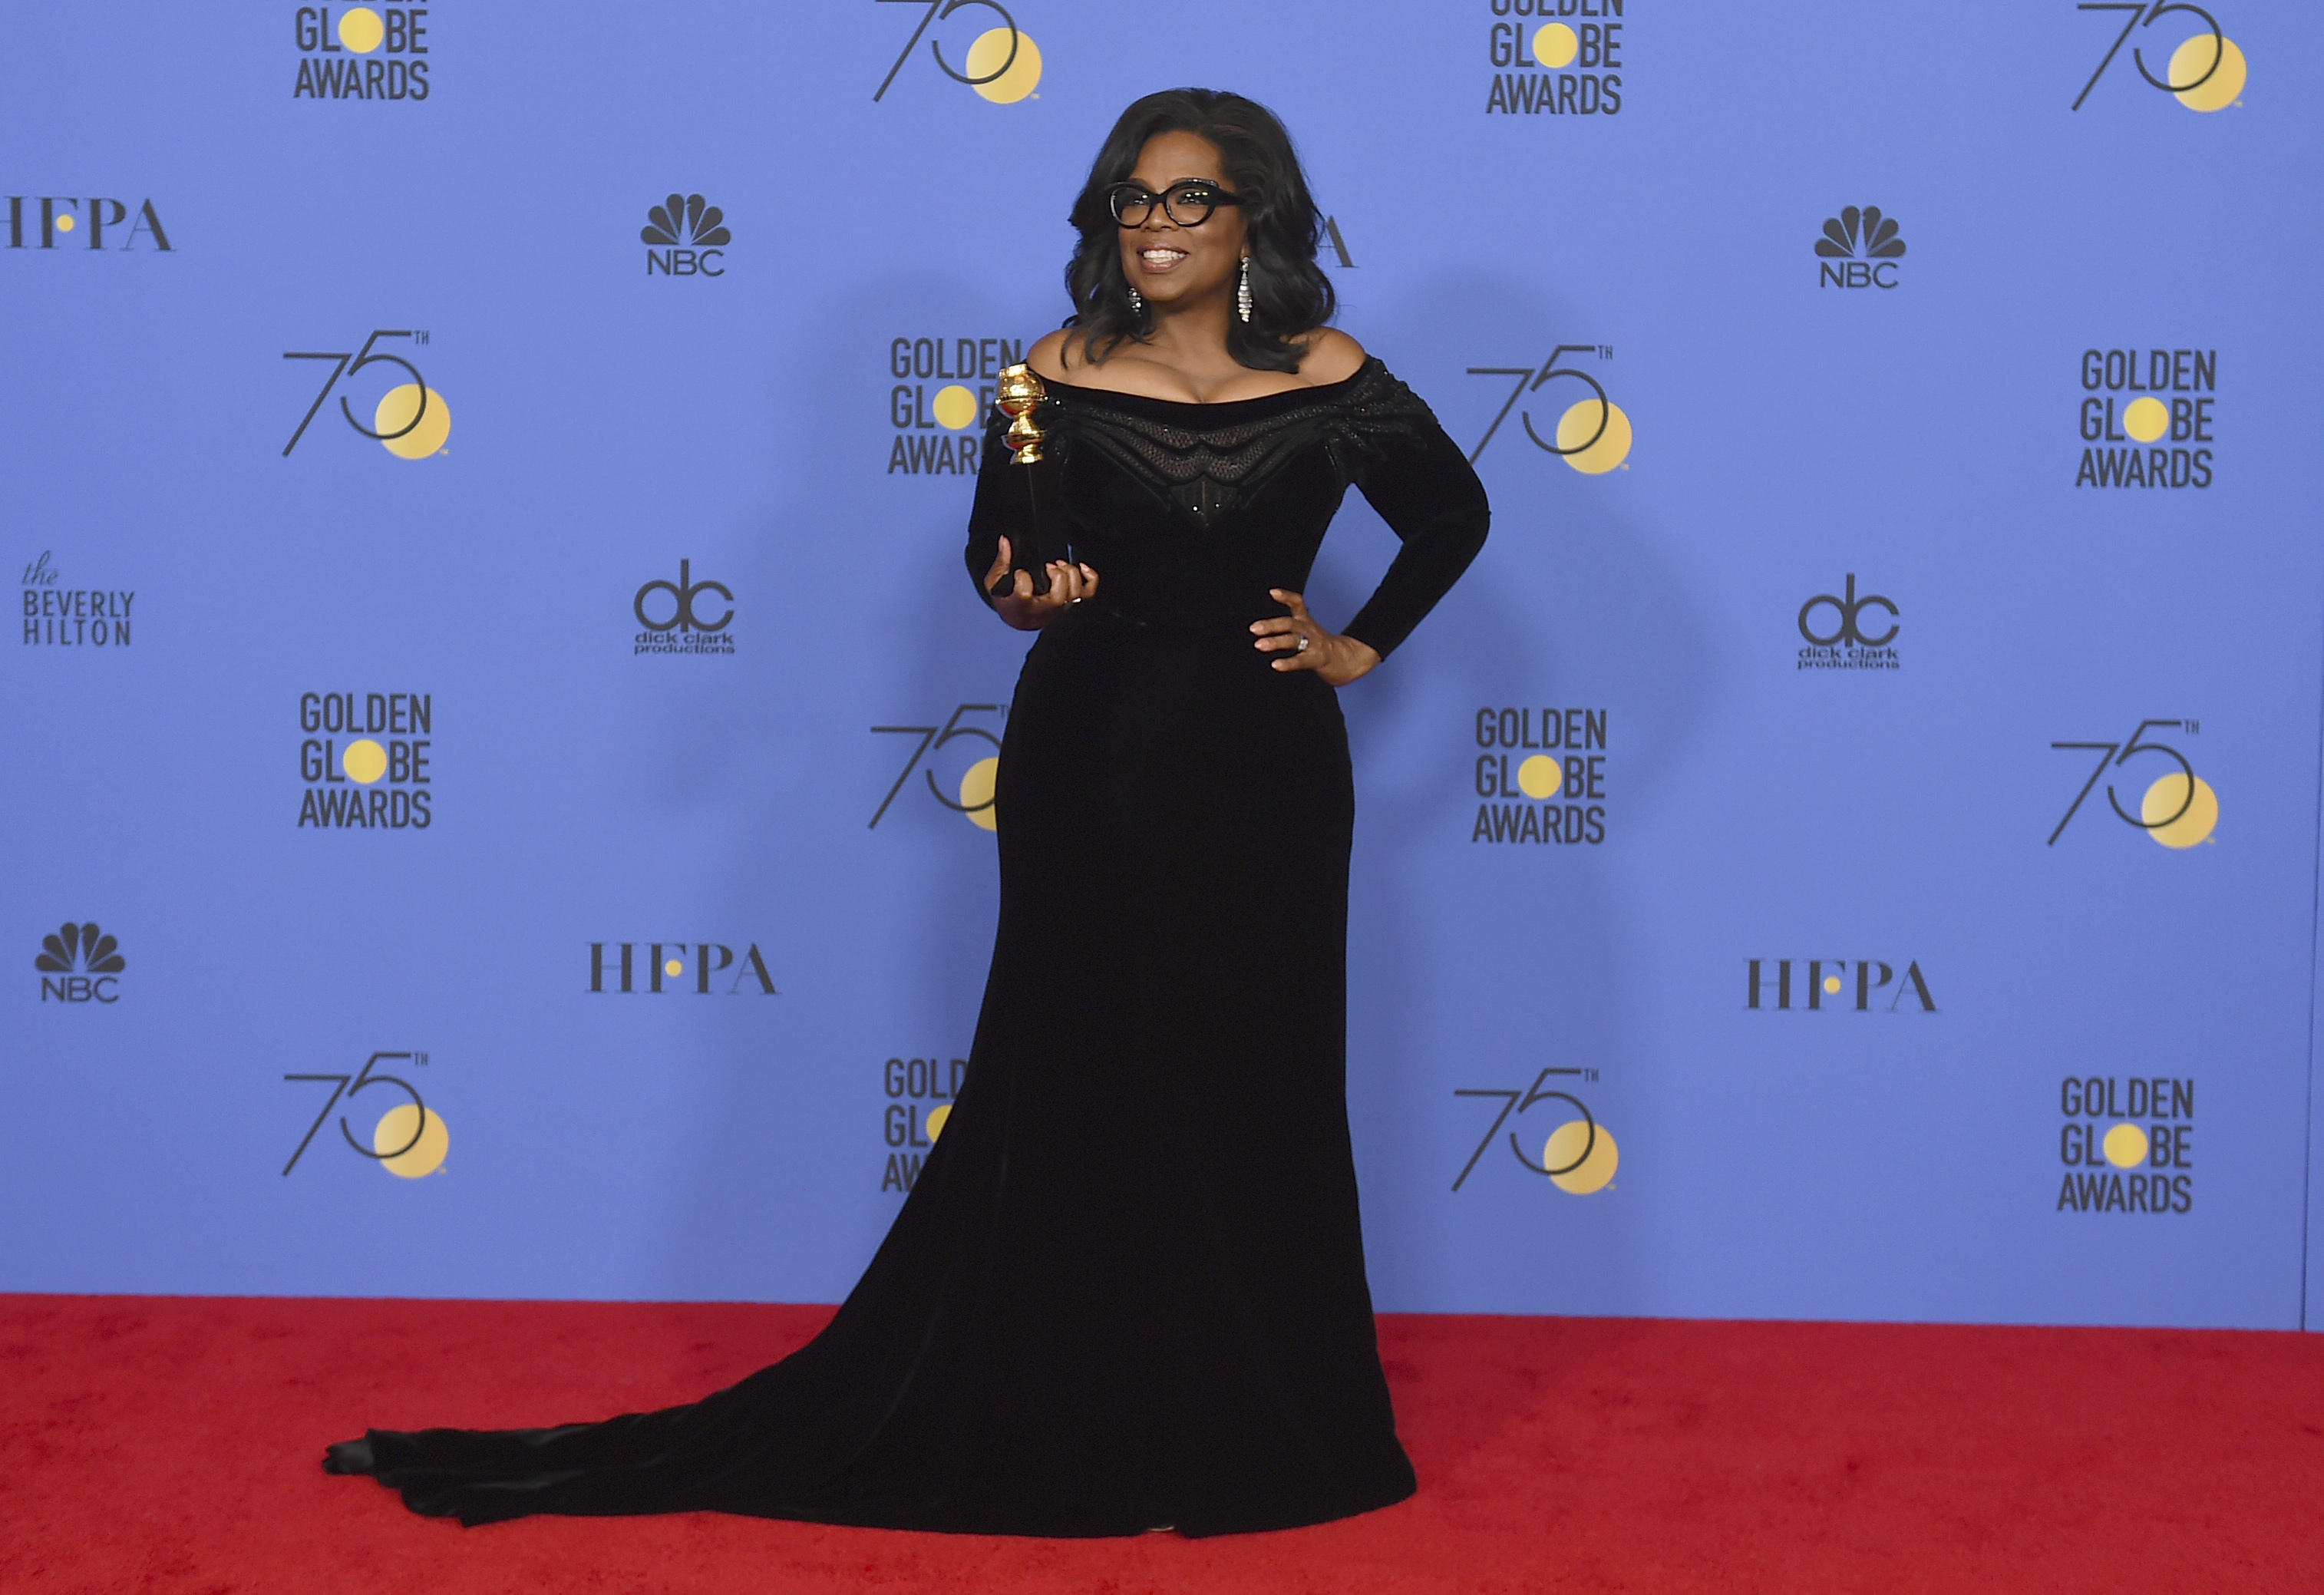 Oprah Winfrey at the Golden Globes (Jordan Strauss/Invision/AP)